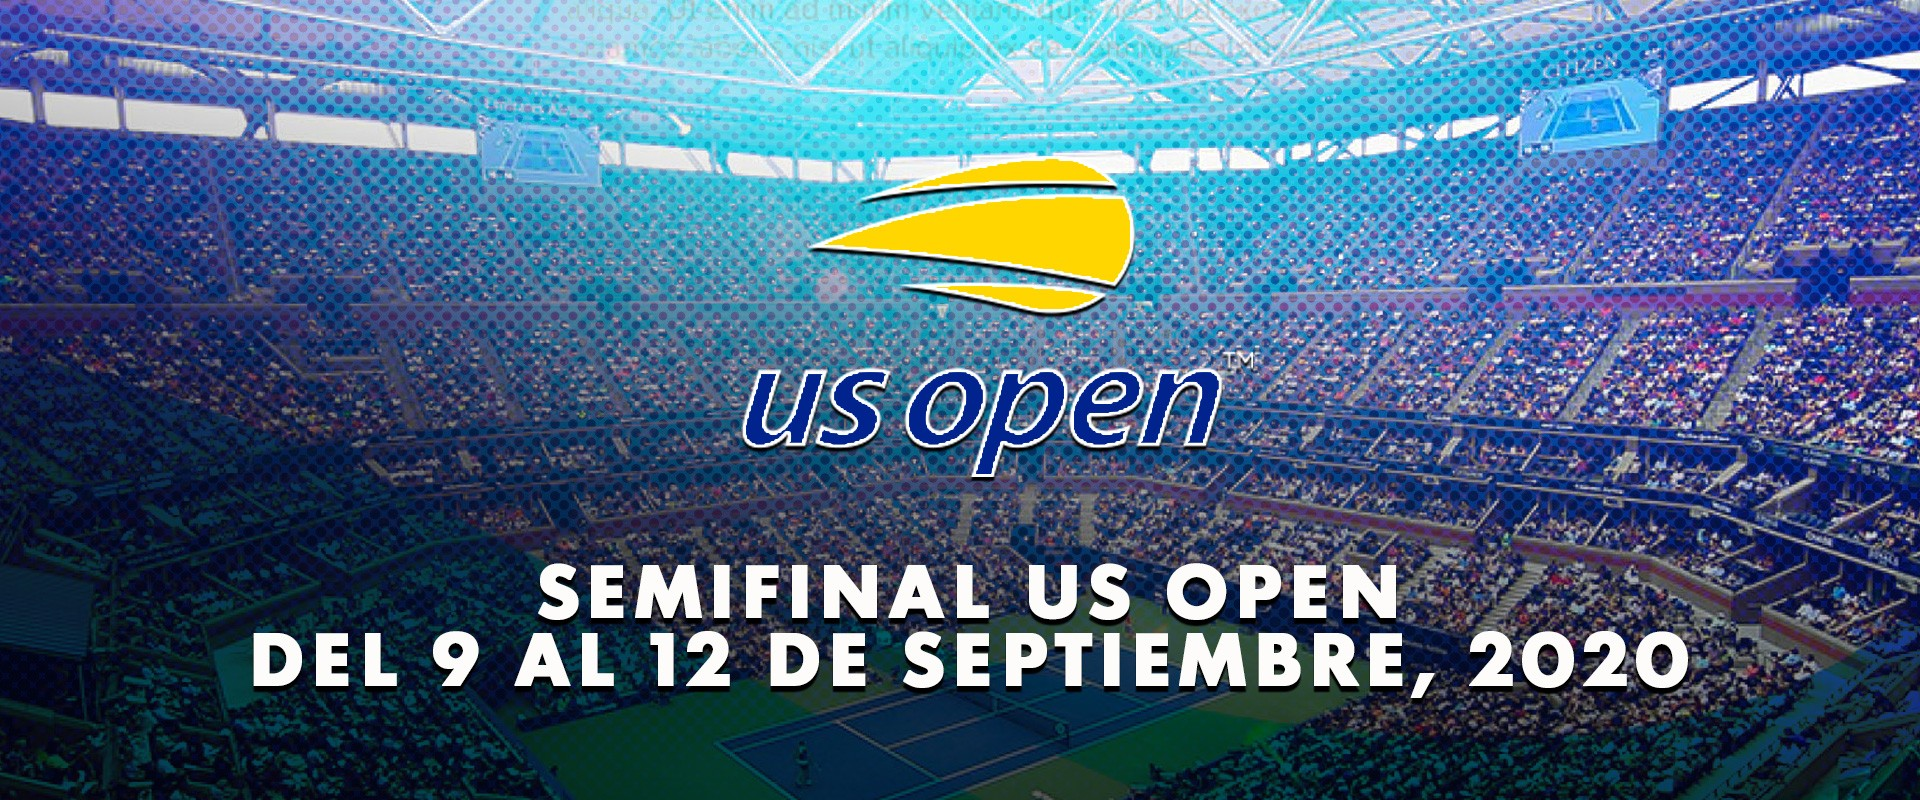 Semifinal US OPEN